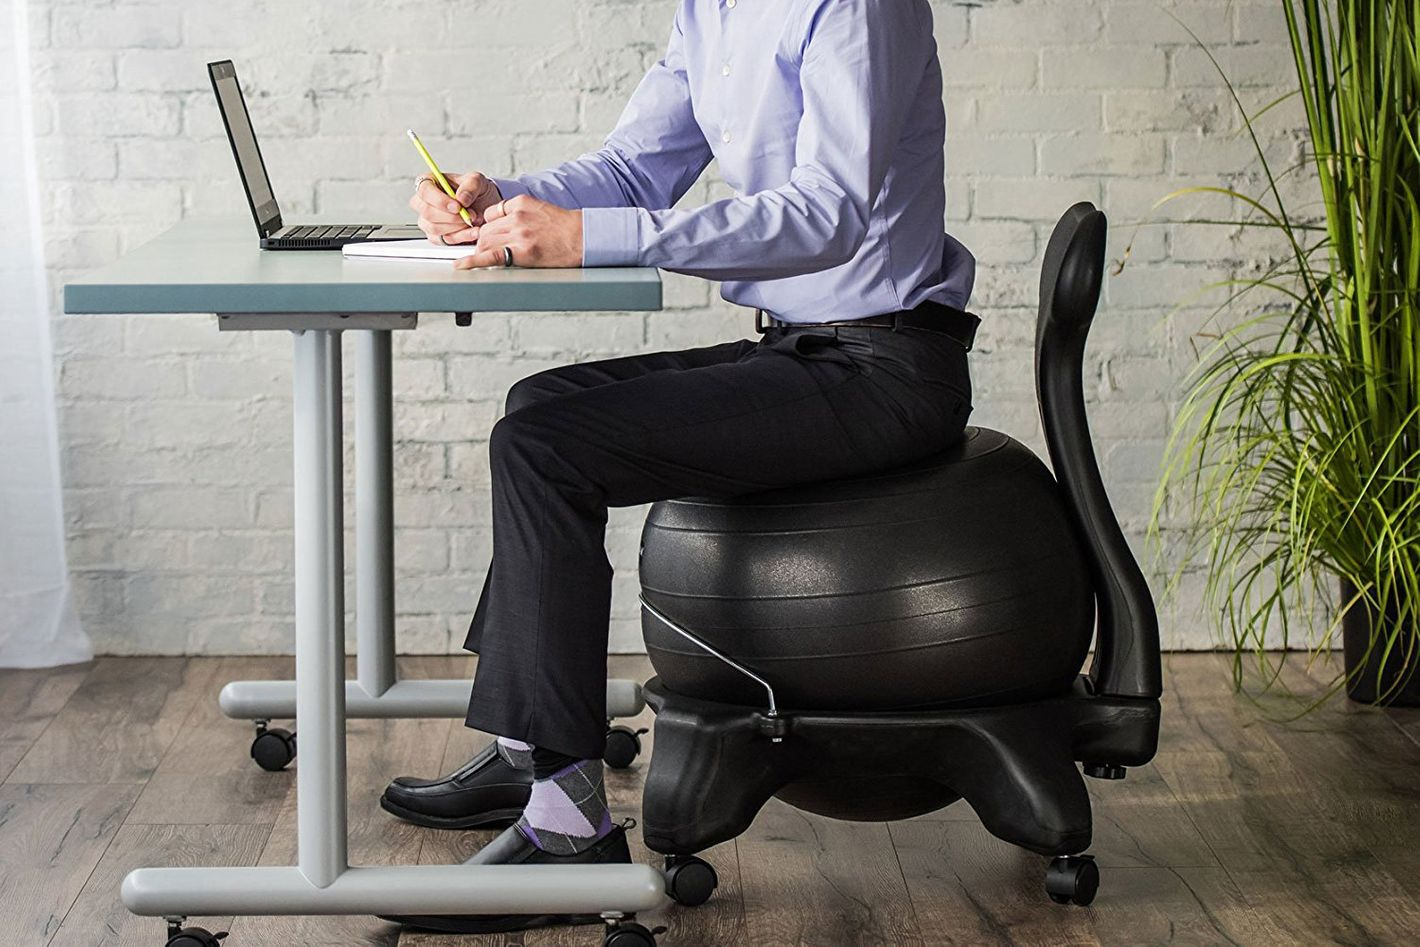 ergonomic desk exercise ball chair gaiam